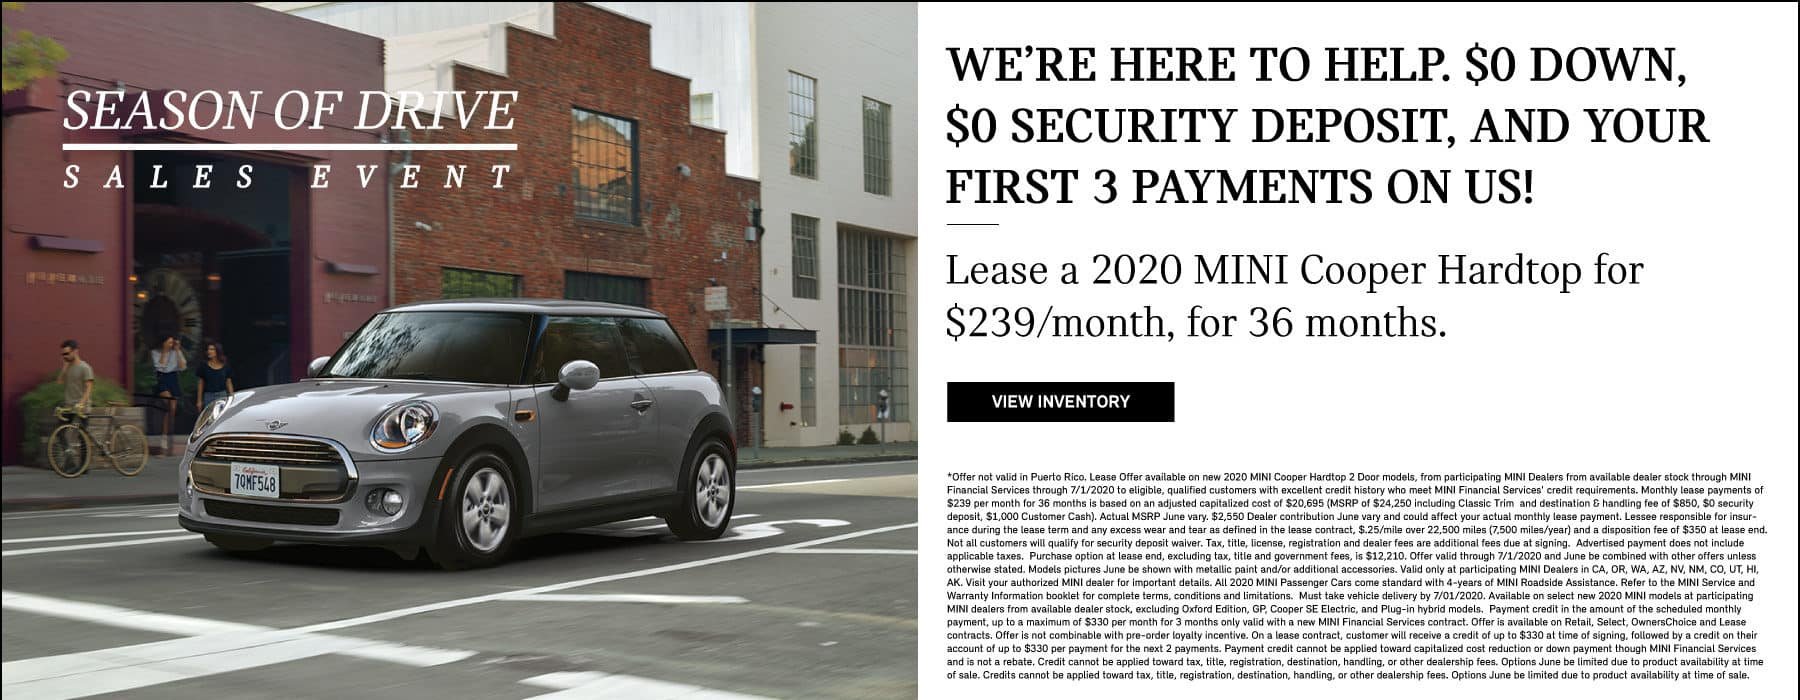 WE'RE HERE TO HELP. $0 DOWN, $0 SECURITY DEPOSIT, AND YOUR FIRST 3 PAYMENTS WAIVED. LEASE A 2020 MINI COOPER HARDTOP FOR $239 / MONTH FOR 36 MONTHS. SEE DEALER FOR COMPLETE DETAILS.